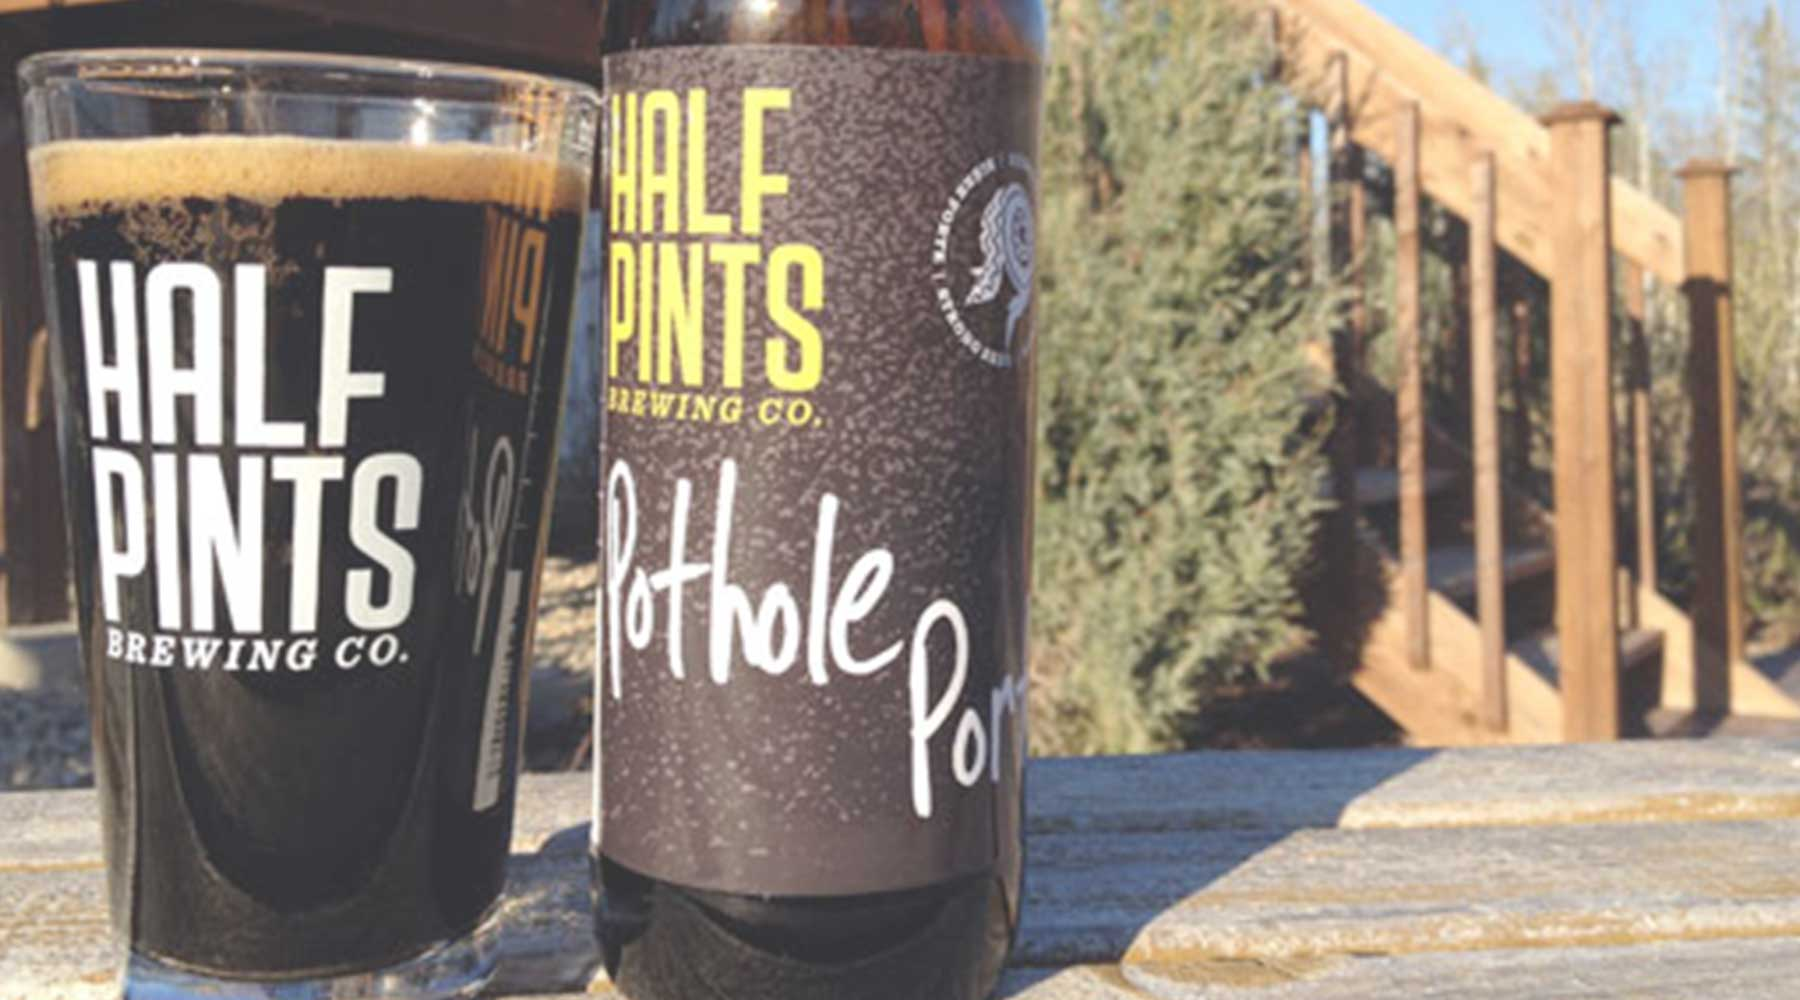 Half Pints Brewing Co. | Just Wine